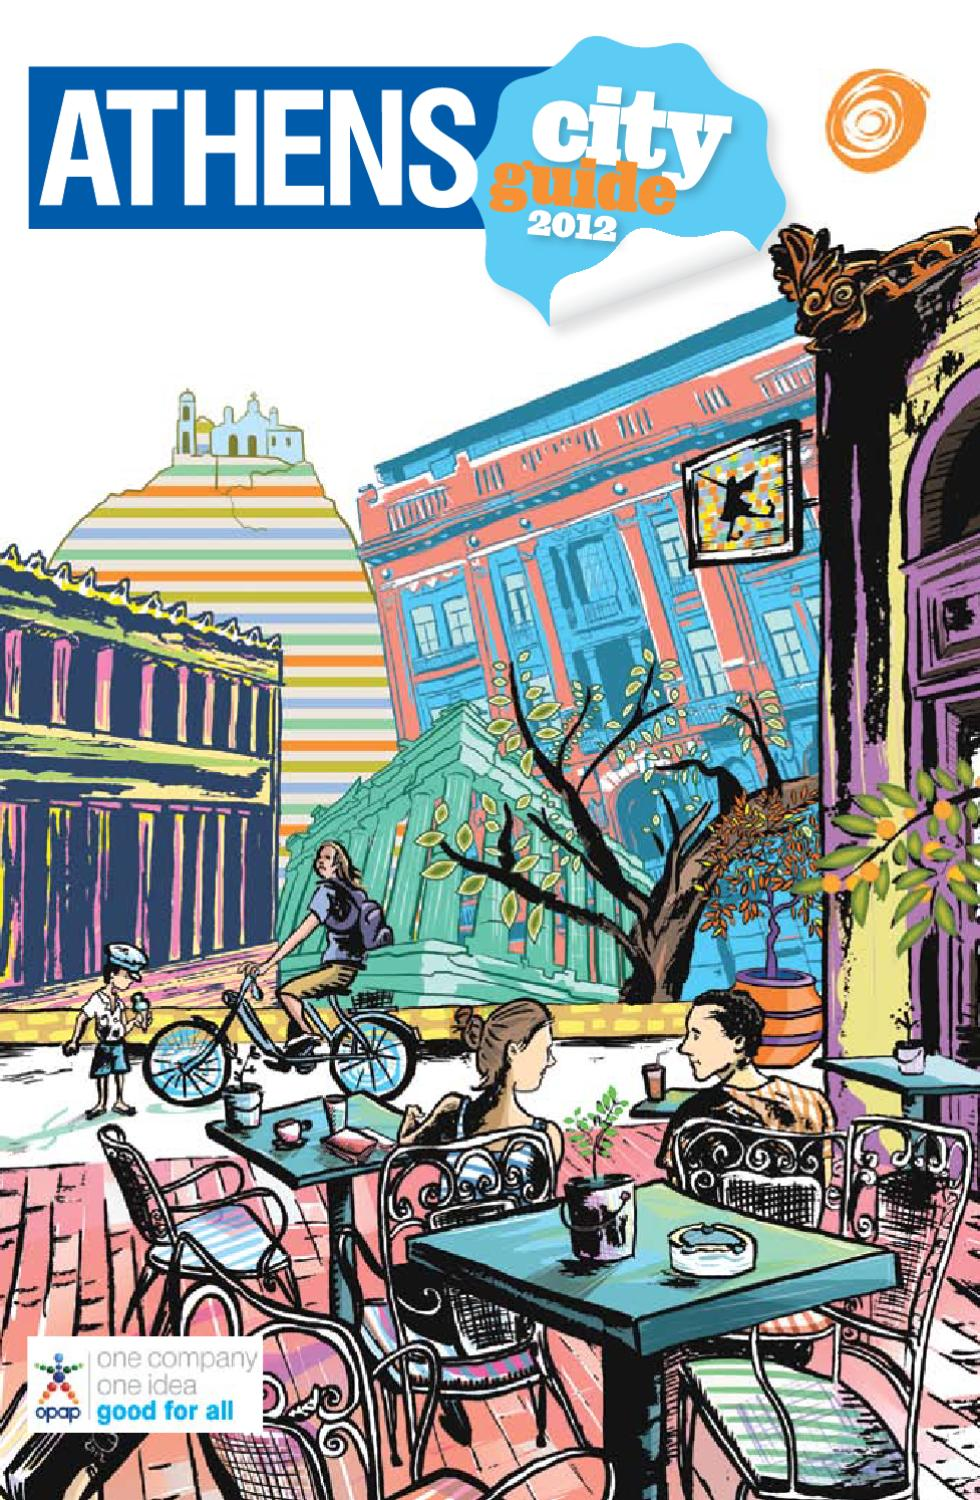 Athens City Guide 2012 by Athens Voice - issuu f1fa85fbd4